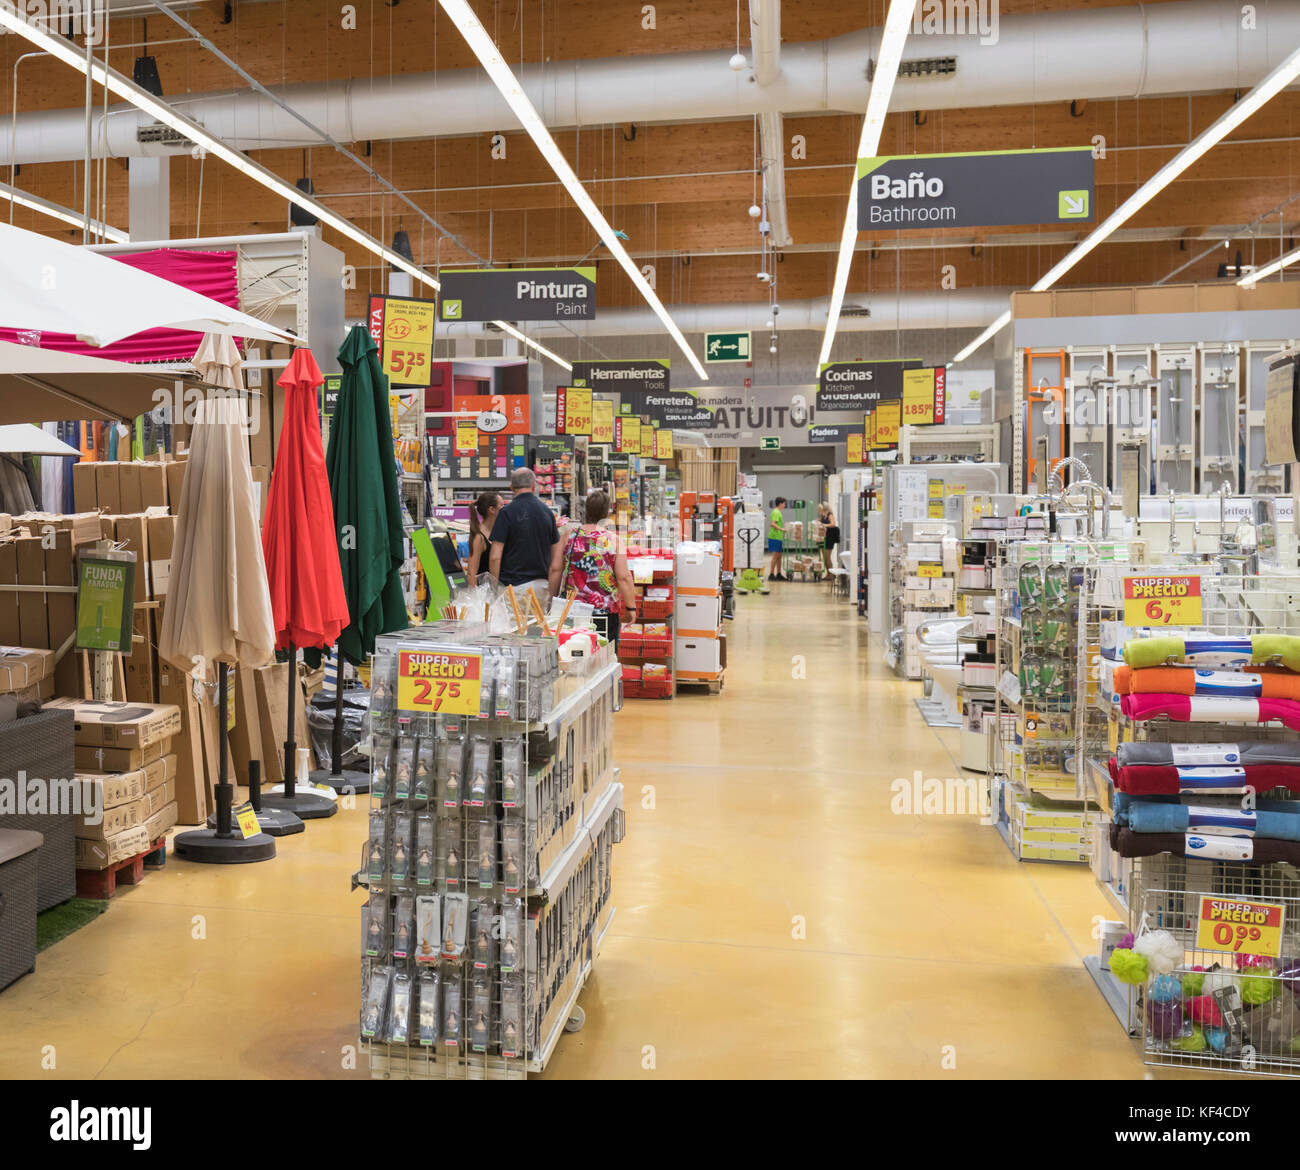 Do it yourself store stock photos do it yourself store stock do it yourself store f2f9j2 rm fuengirola costa del sol malaga province andalusia southern spain interior of solutioingenieria Gallery